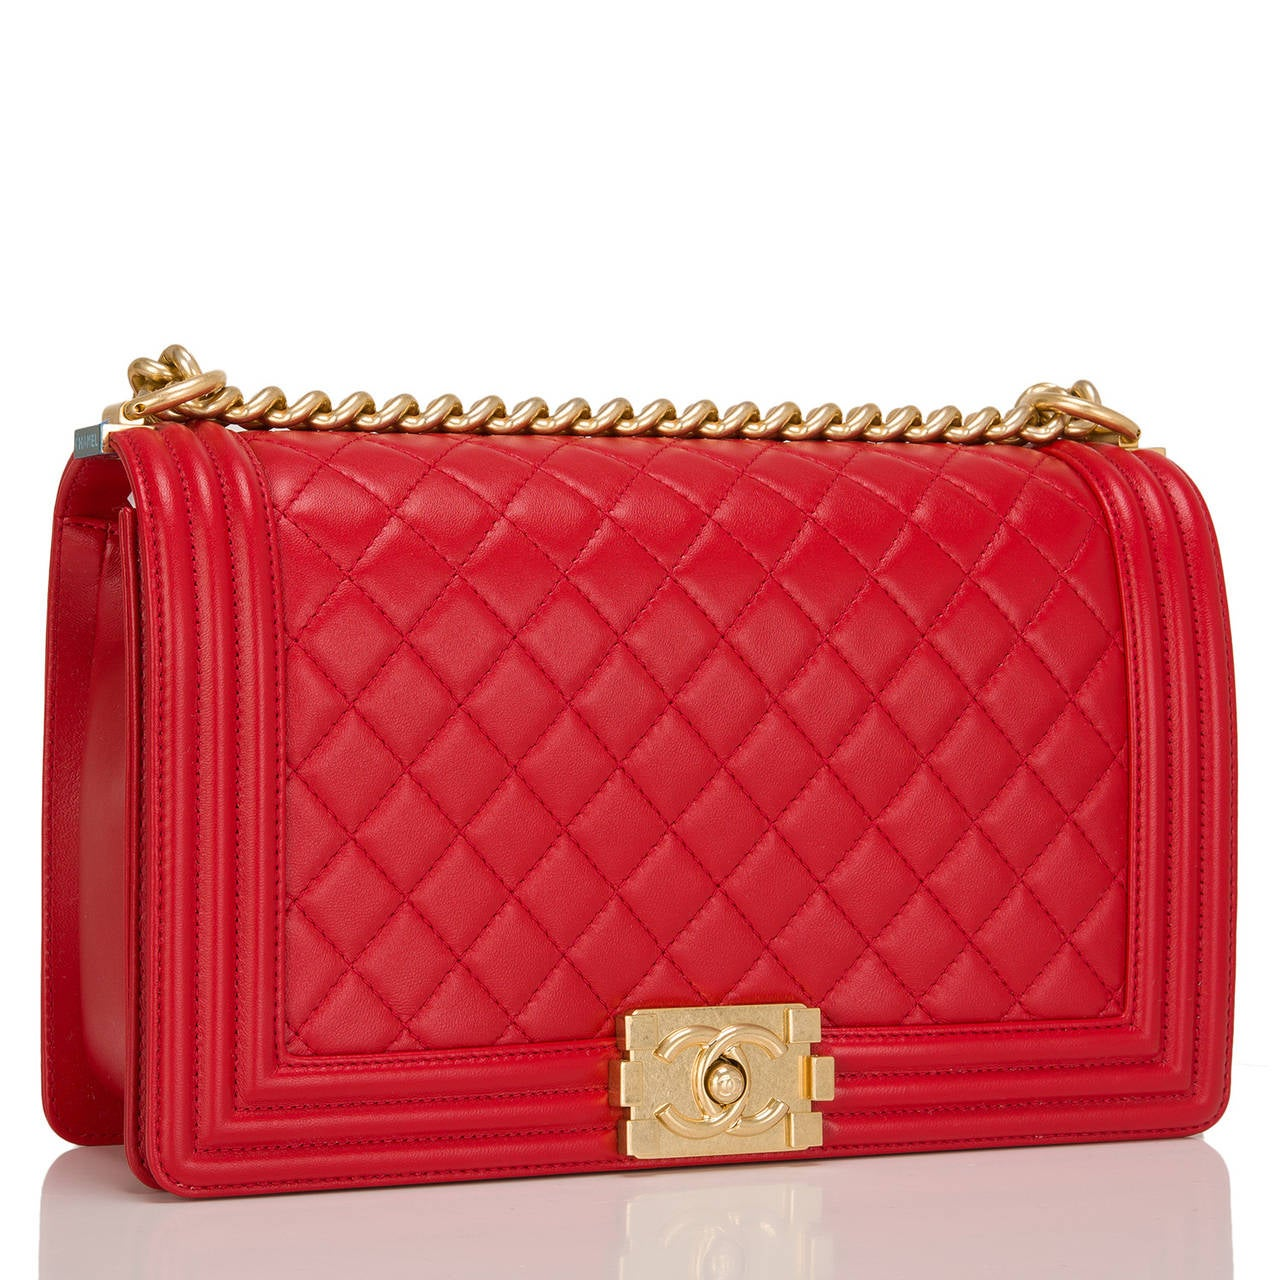 68e53702f552 Chanel Boy Bag Inside Red   Stanford Center for Opportunity Policy ...